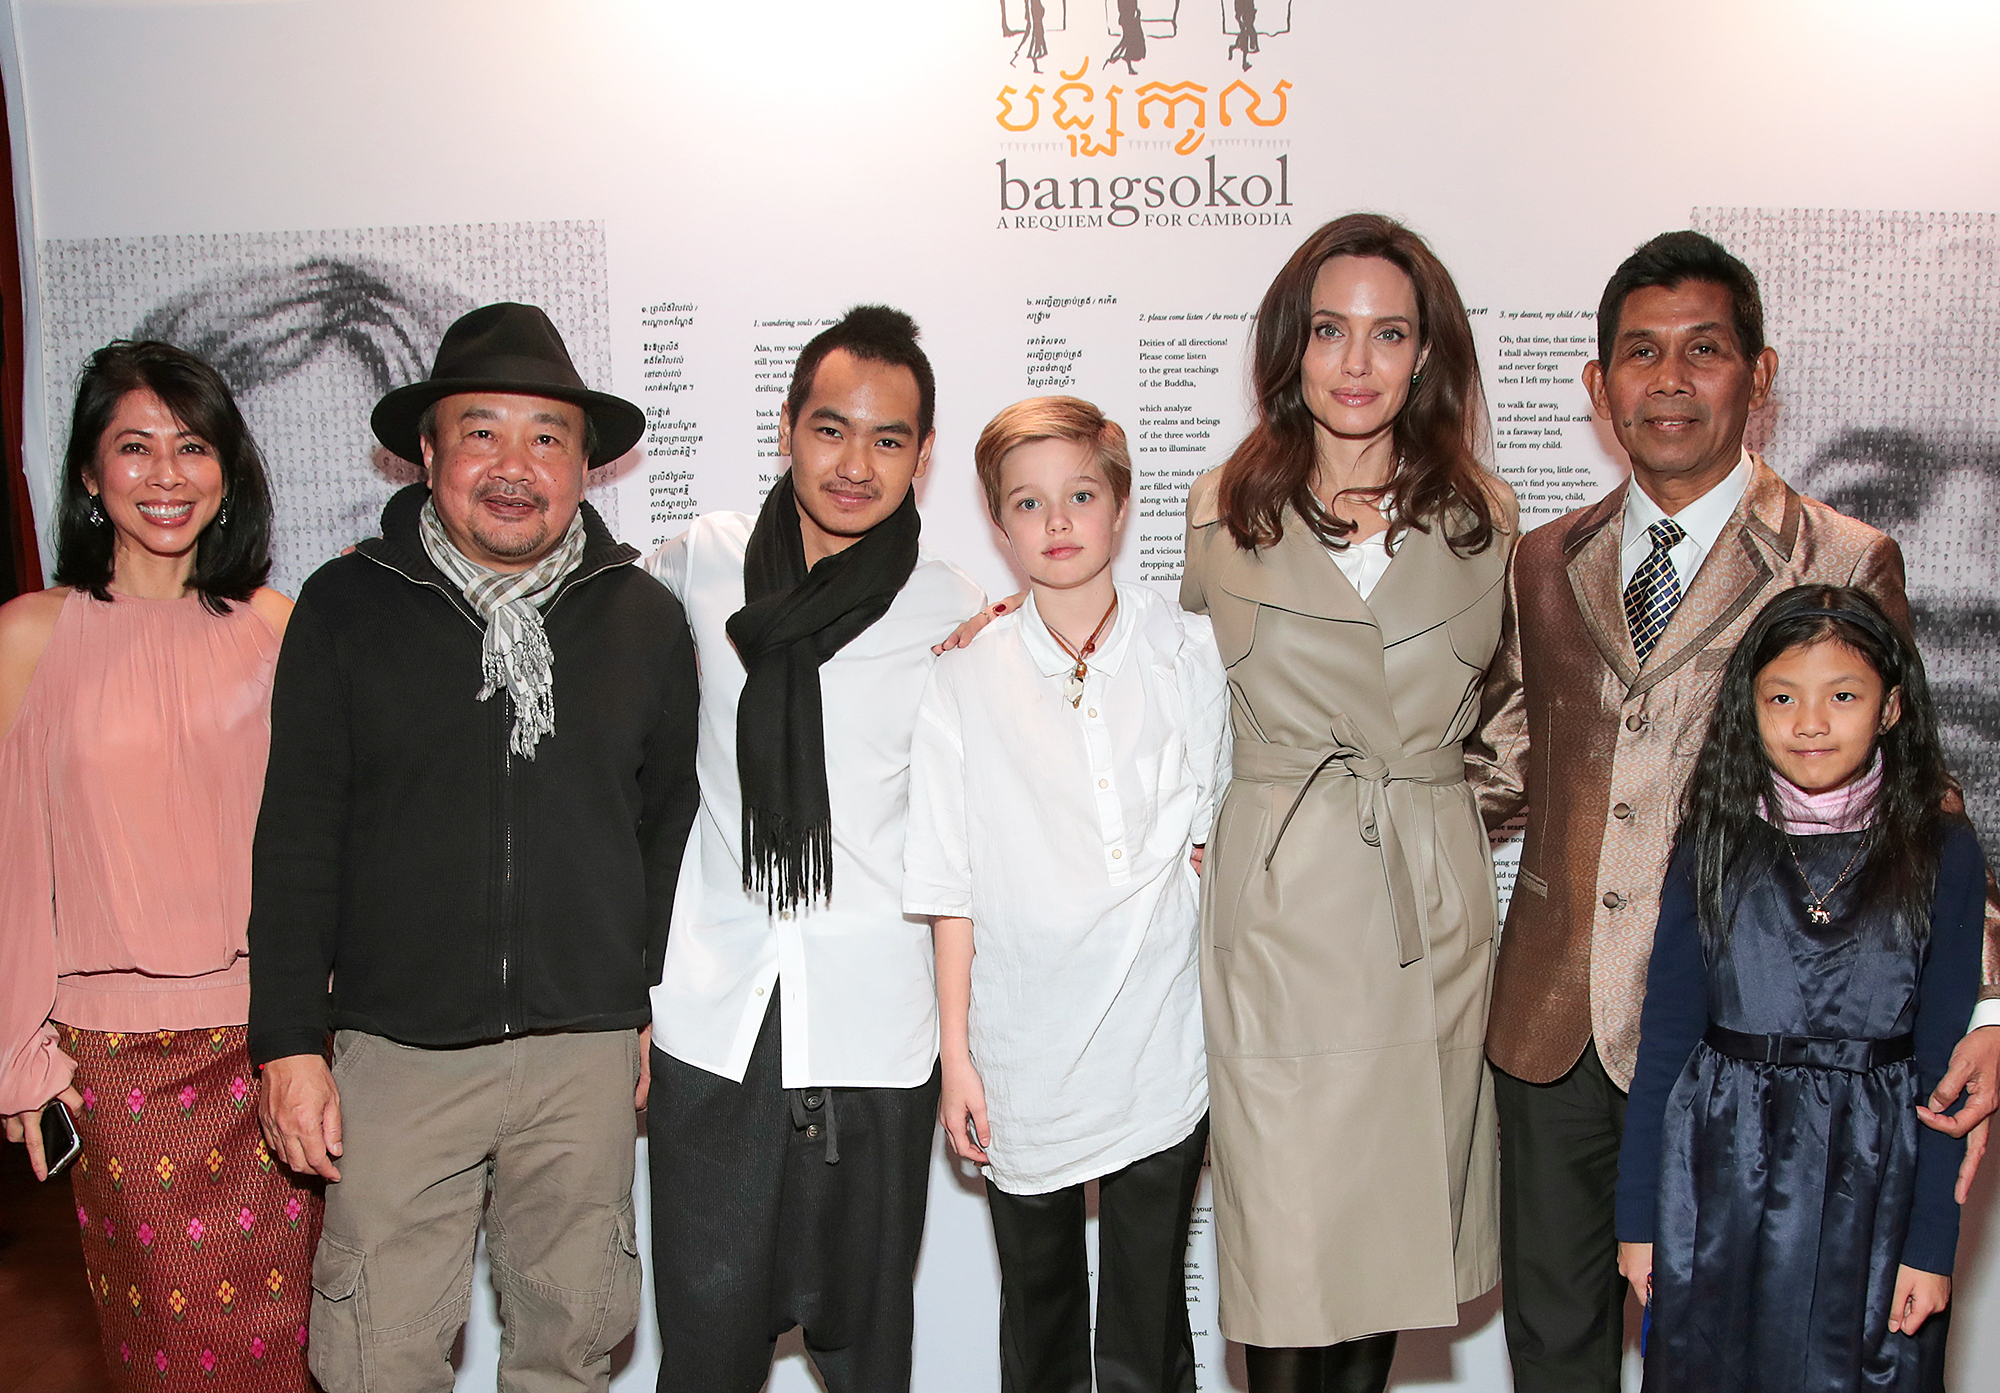 Angelina Jolie Attends Bangsokol: A Requiem for Cambodia at BAM (Brooklyn Academy of Music)